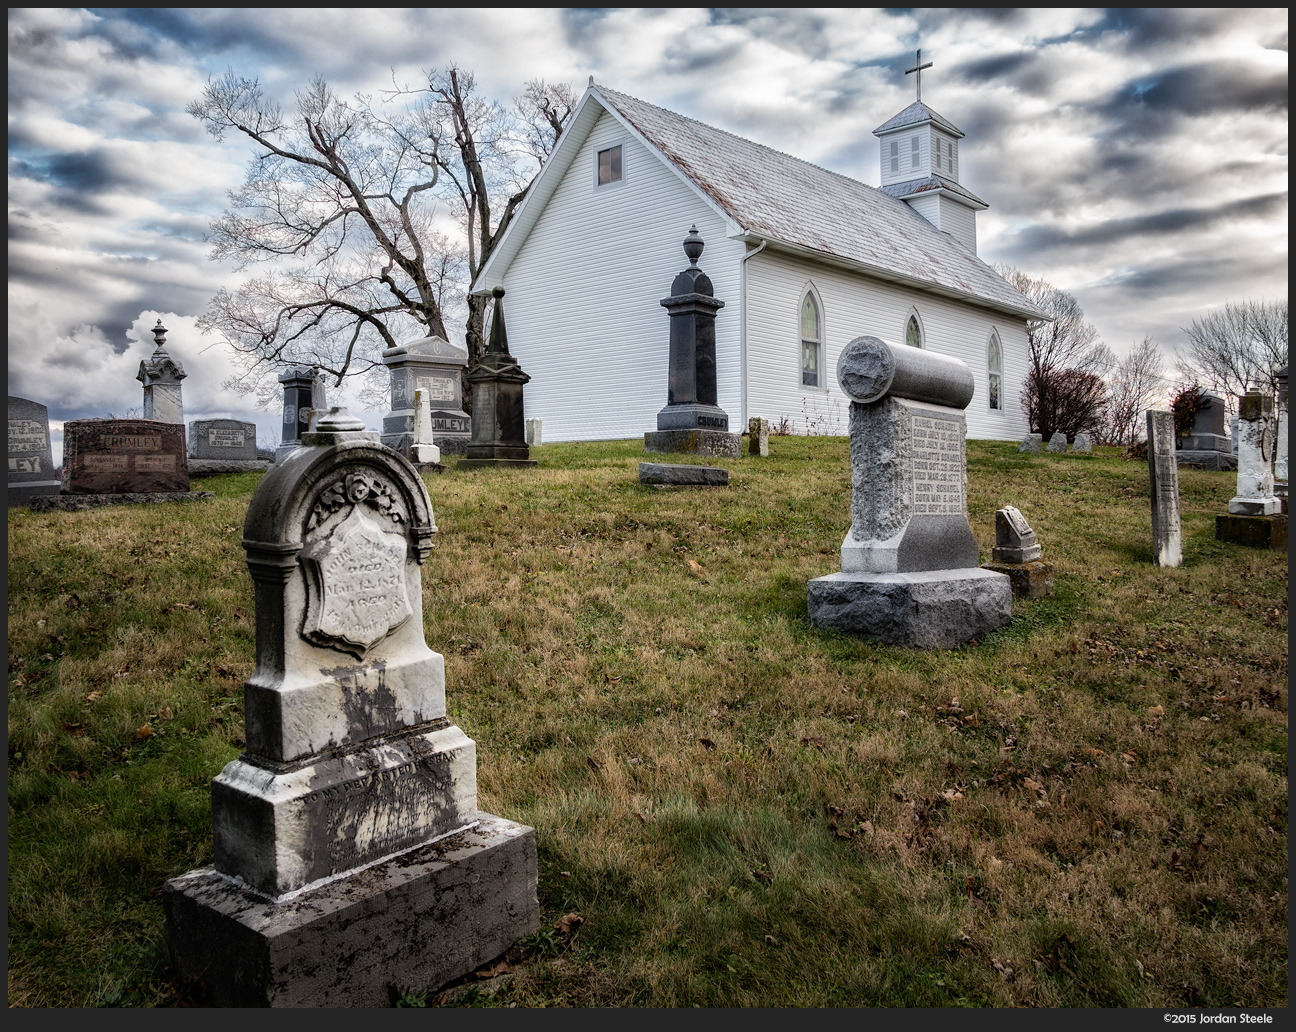 Graveyard - Olympus OM-D E-M10 Mark II with Panasonic 14mm f/2.5 @